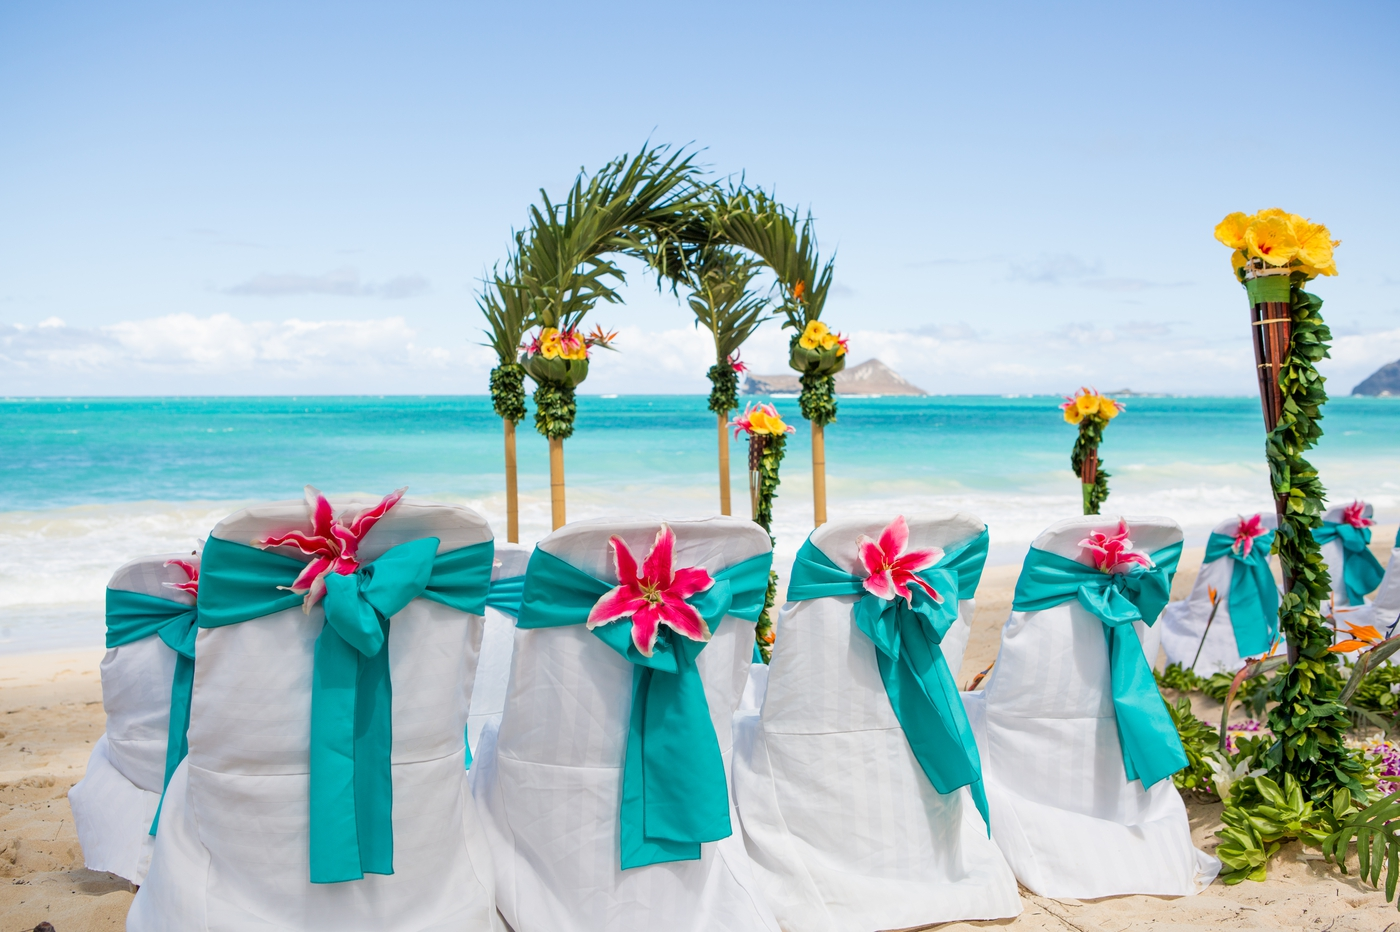 Star gazers on the ocean blue sashes